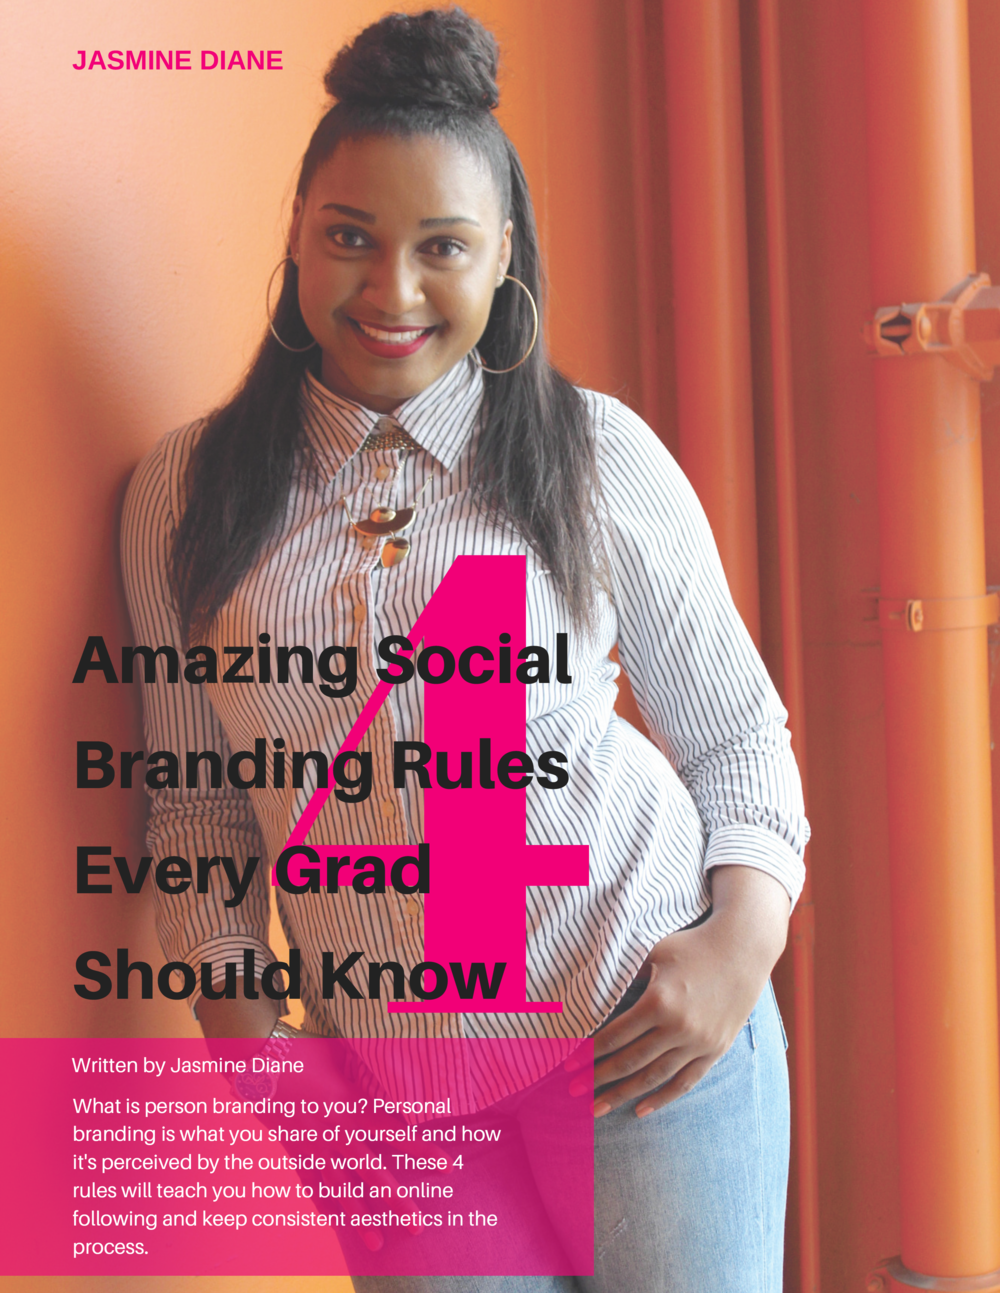 4 amazing social branding basics every grad should know